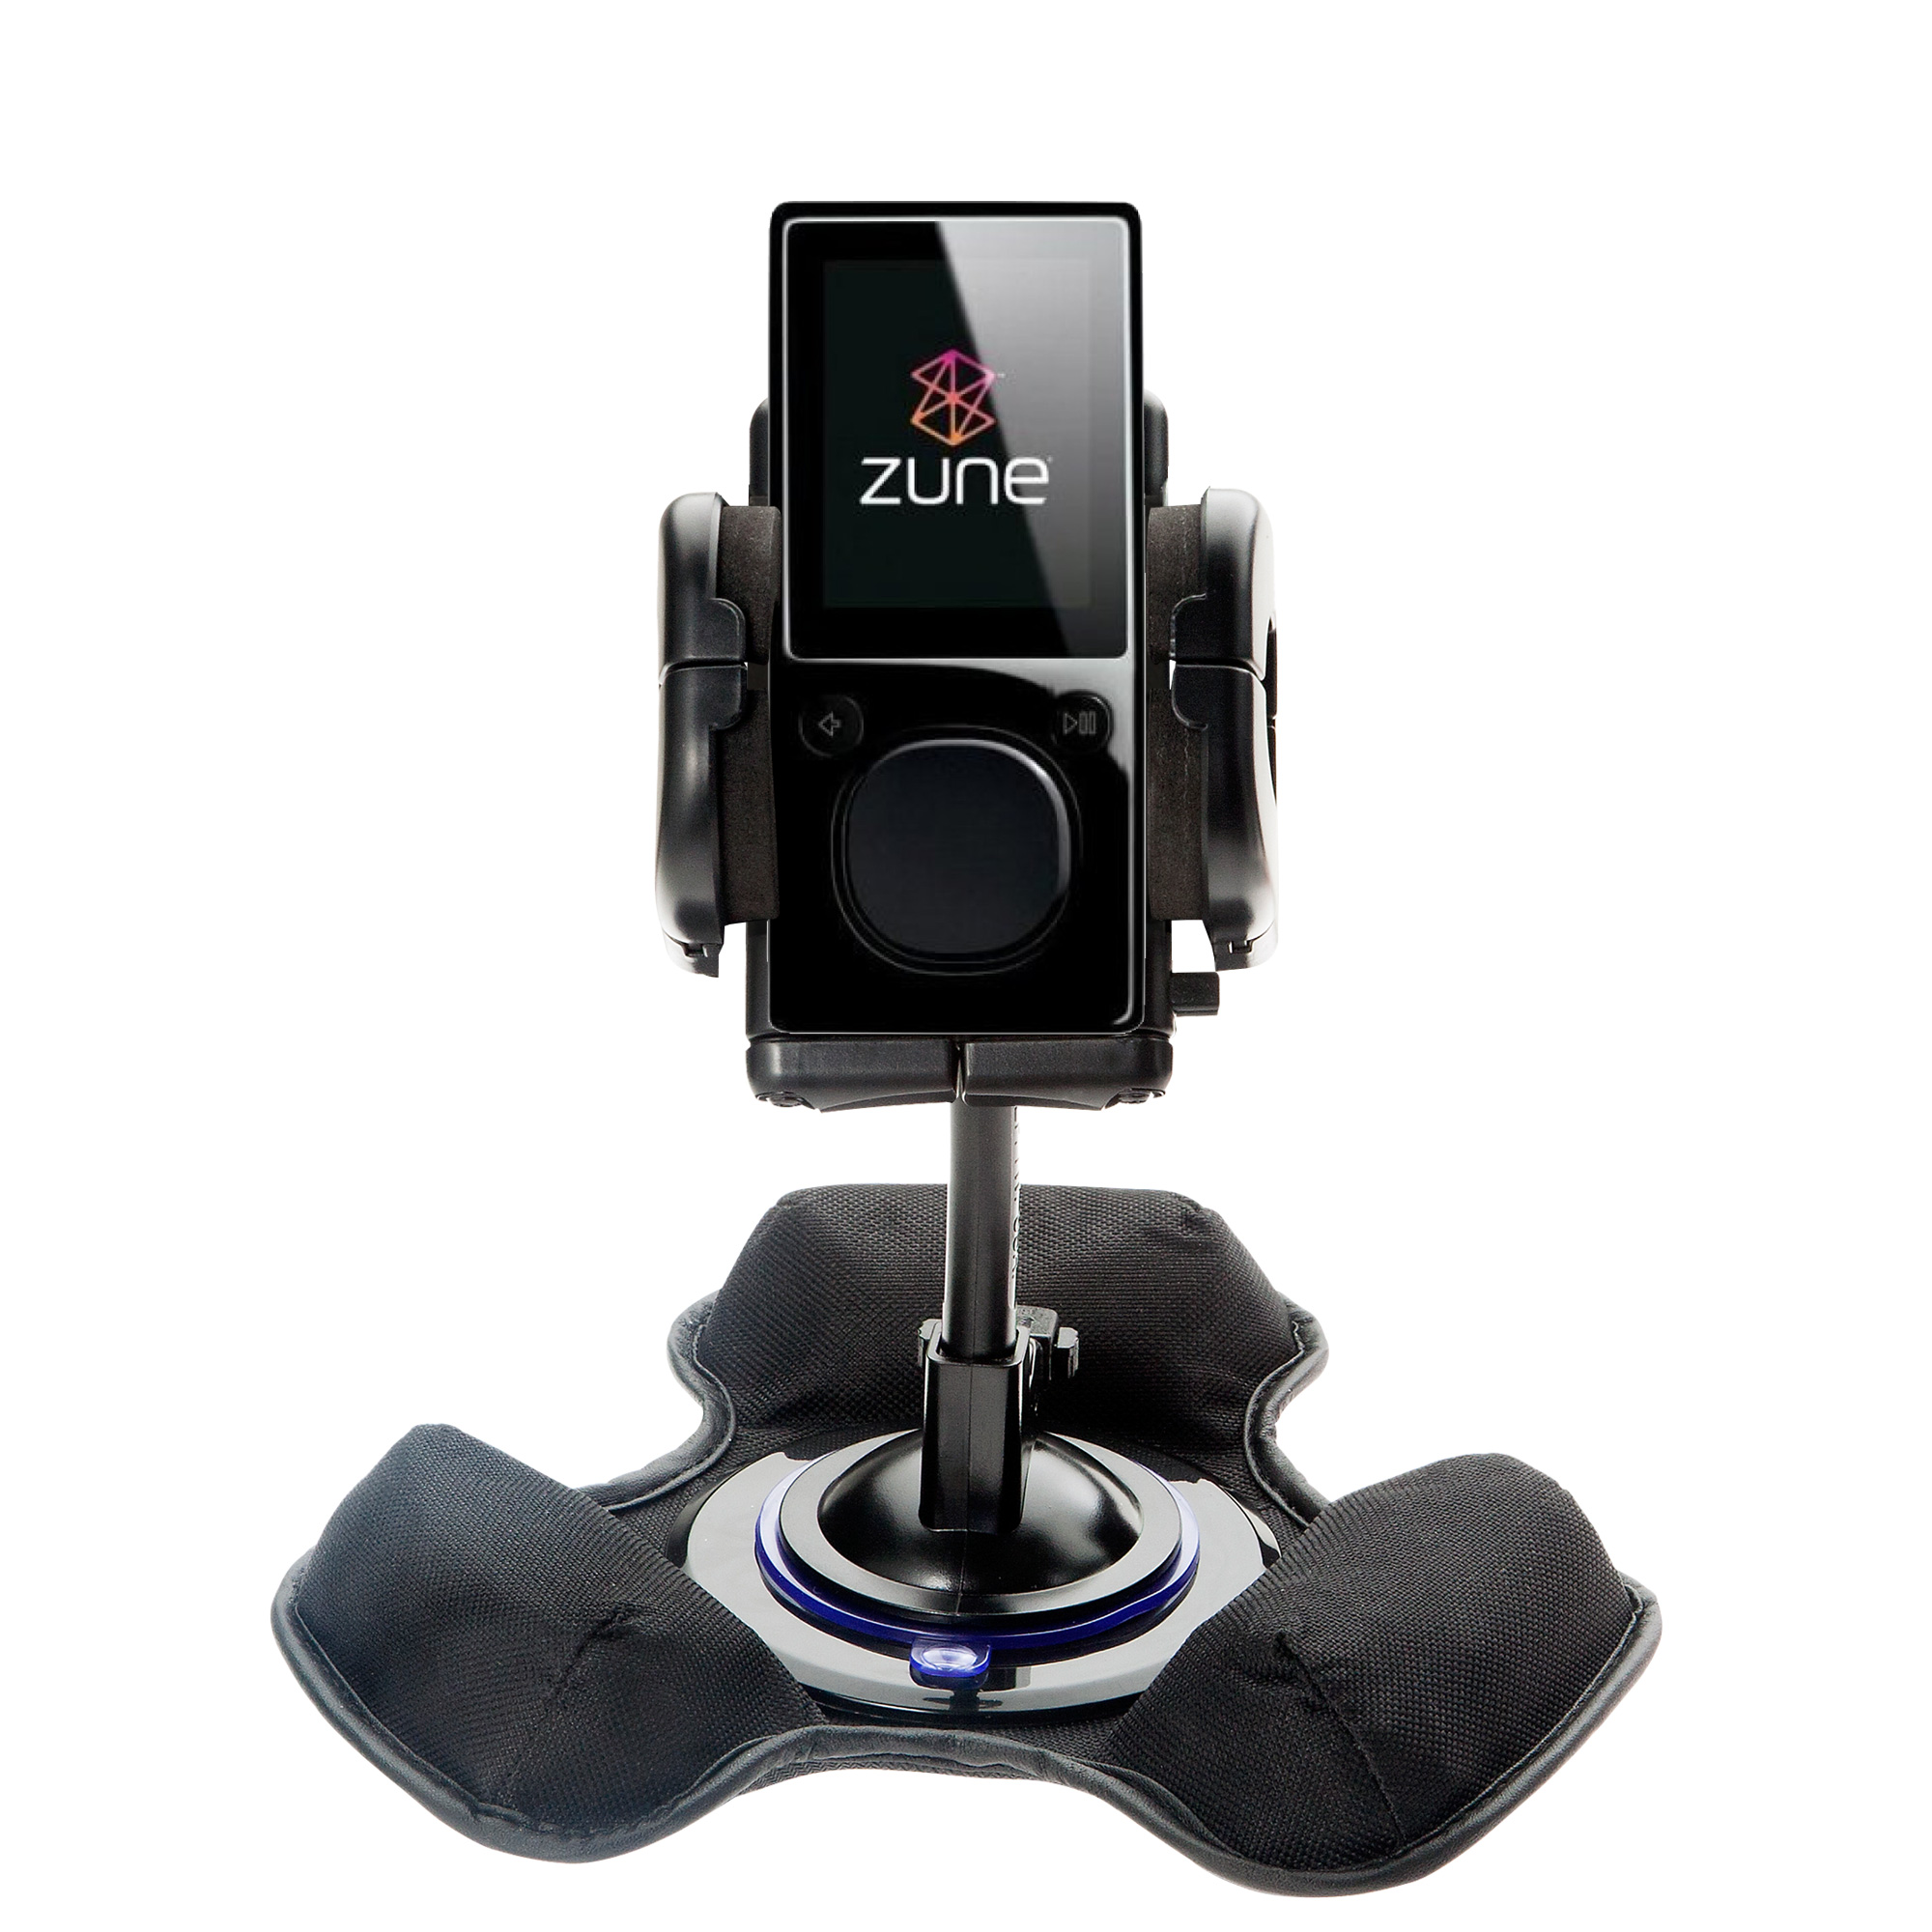 Dash and Windshield Holder compatible with the Microsoft Zune 8 / 12